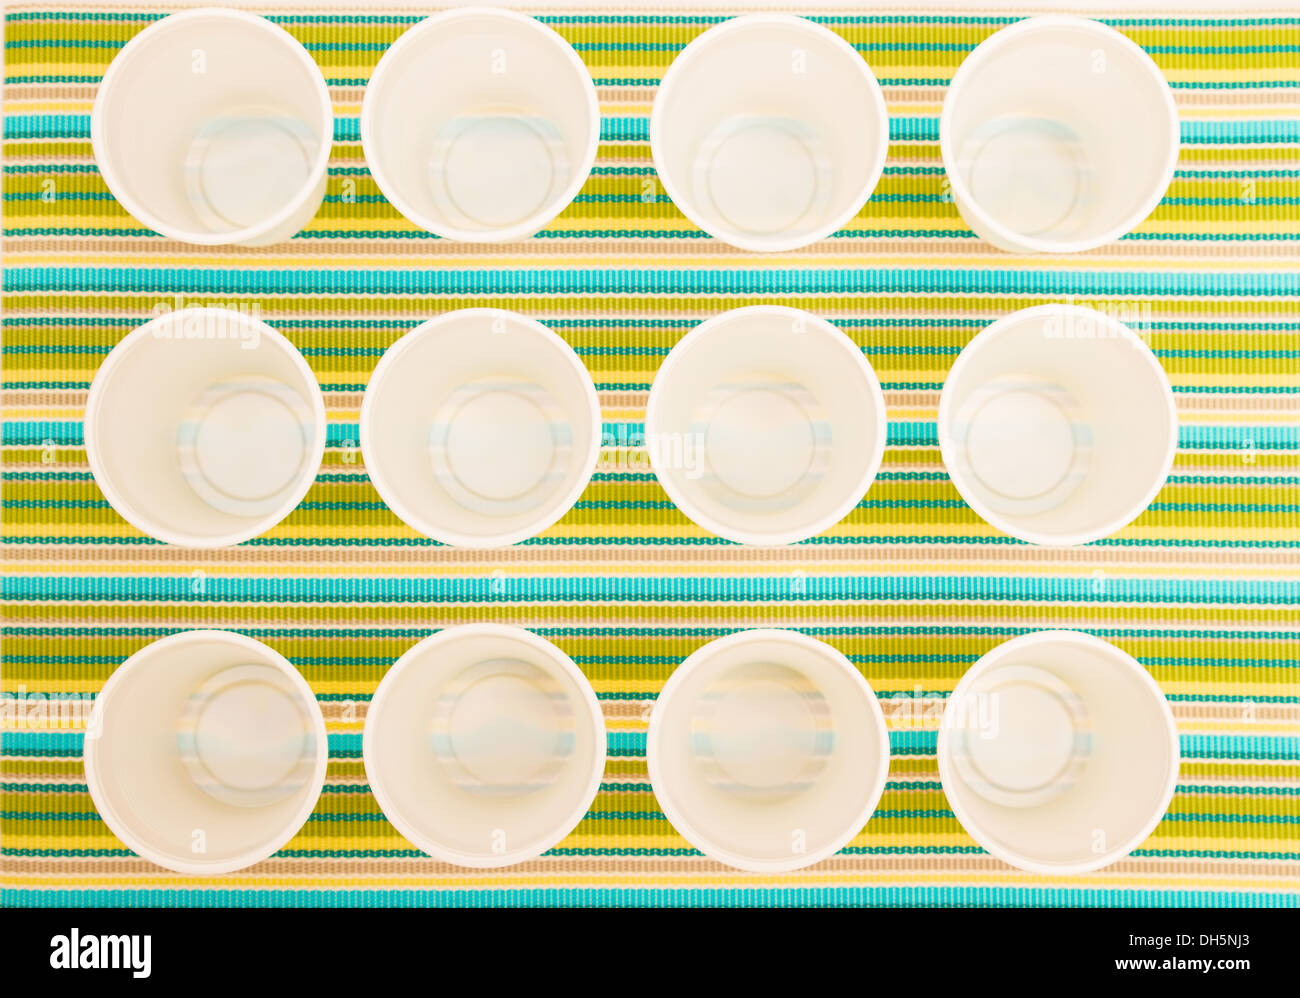 Lots of disposable cups on a colorful background - Stock Image